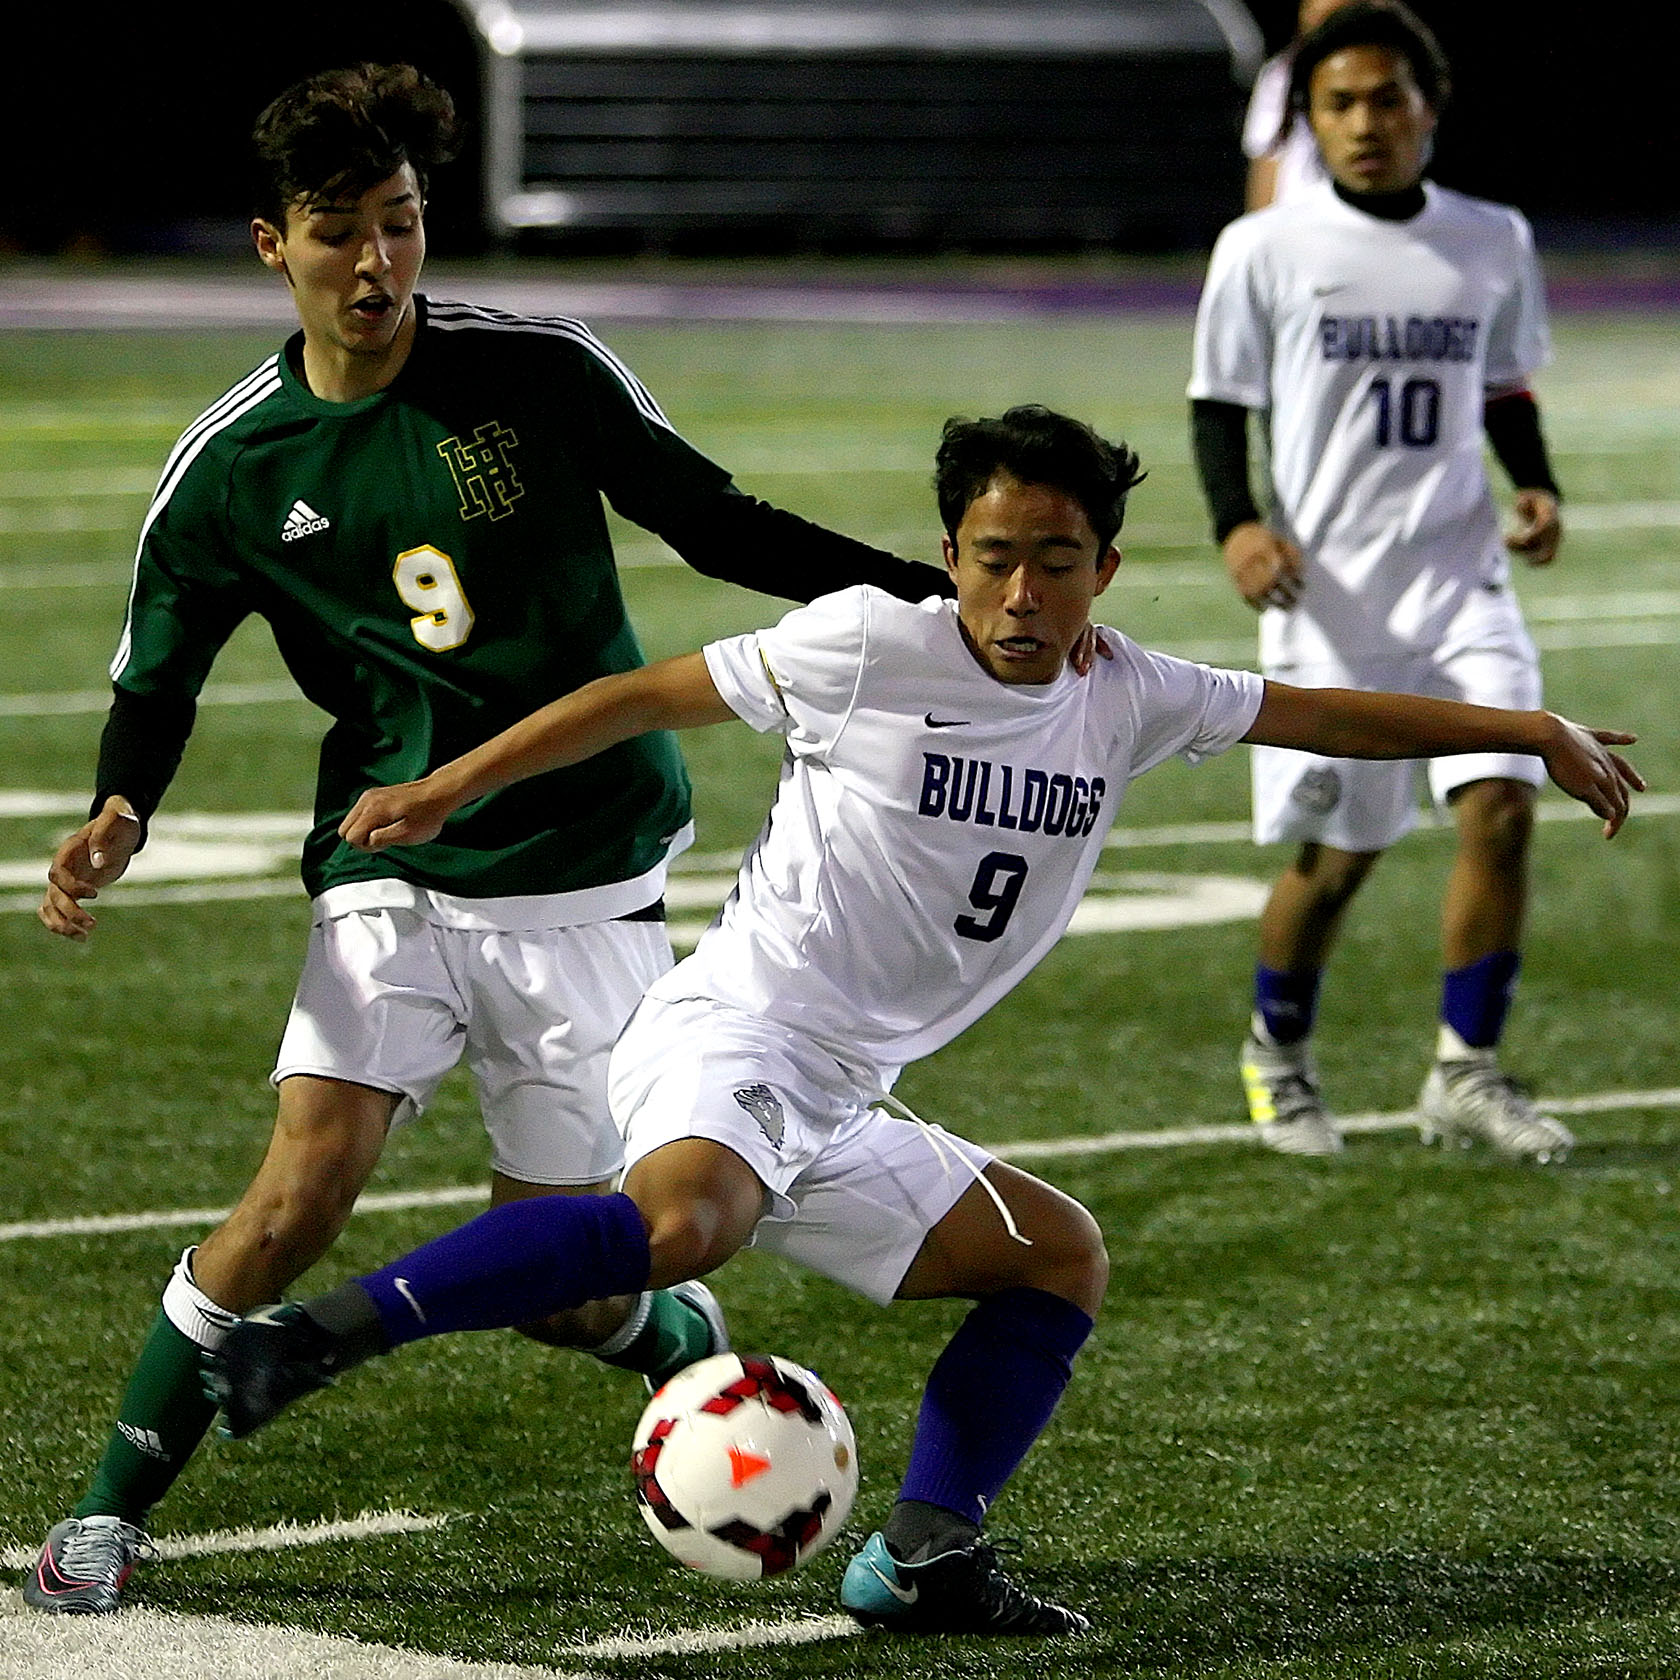 Gin Piang of Foster controls the ball against Foss's Jacob Rodriques.